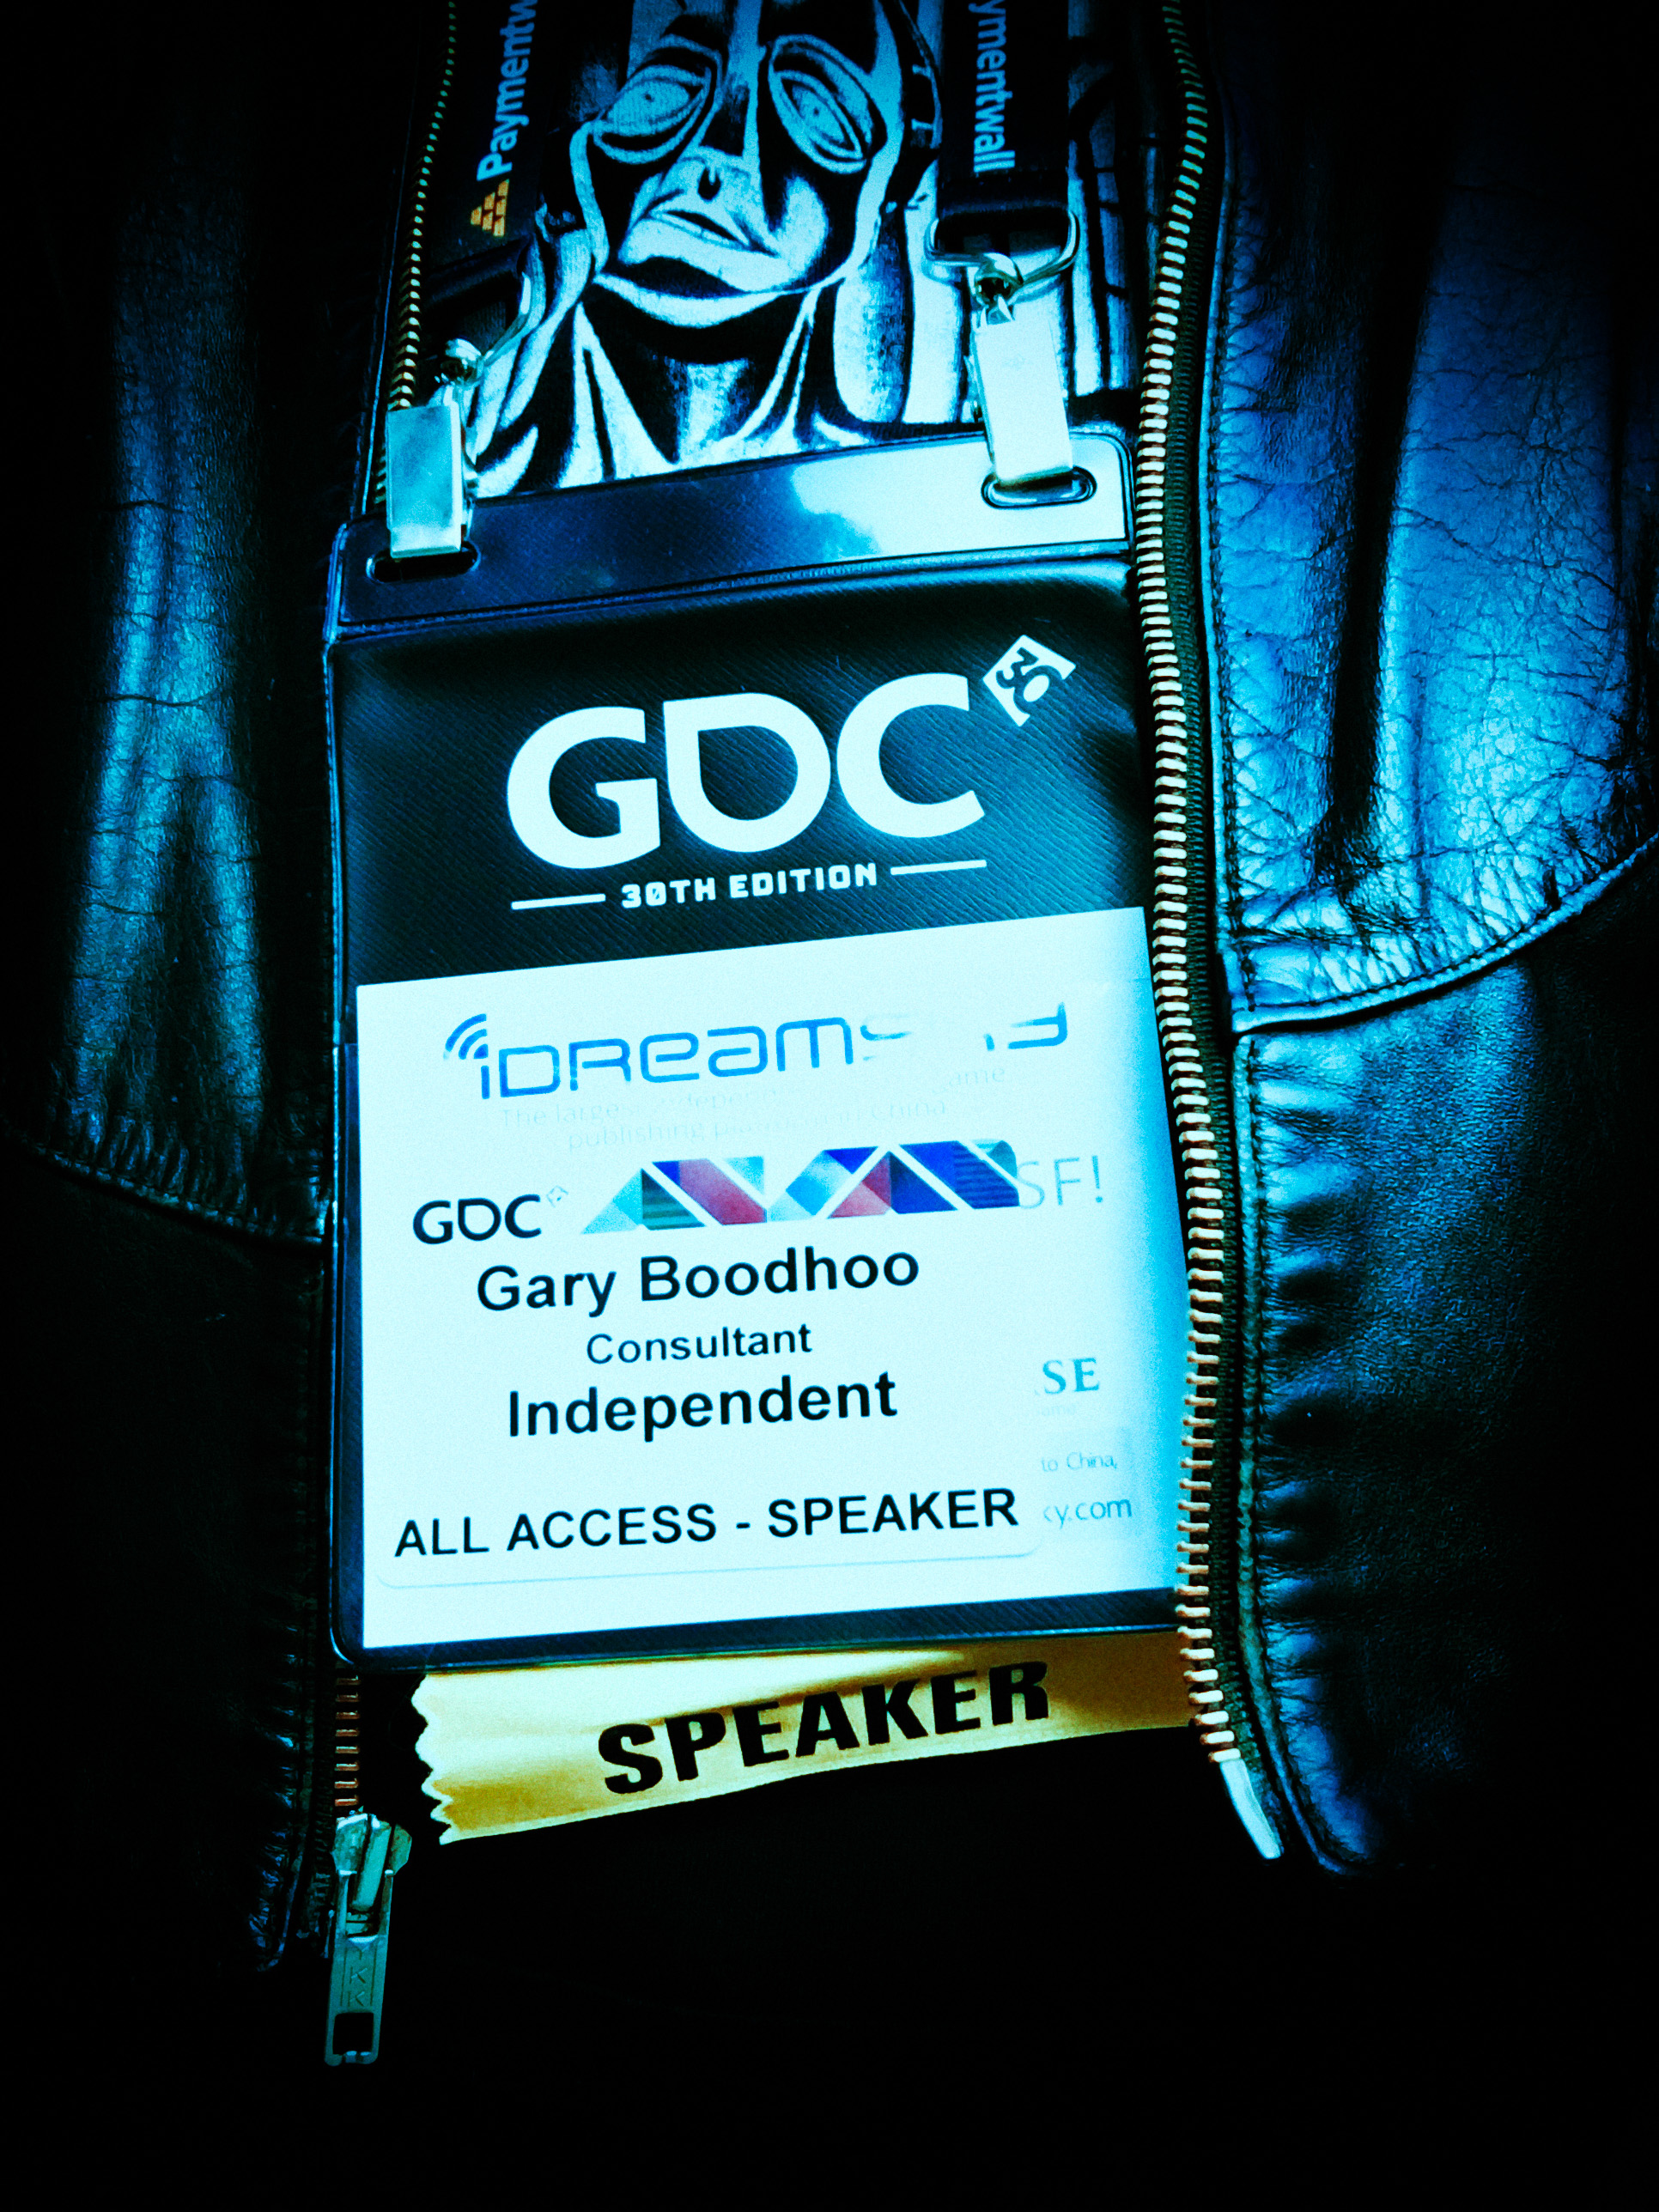 02016 GAME DEVELOPERS CONFERENCE, Moscone Convention Center, San Francisco, CA USA